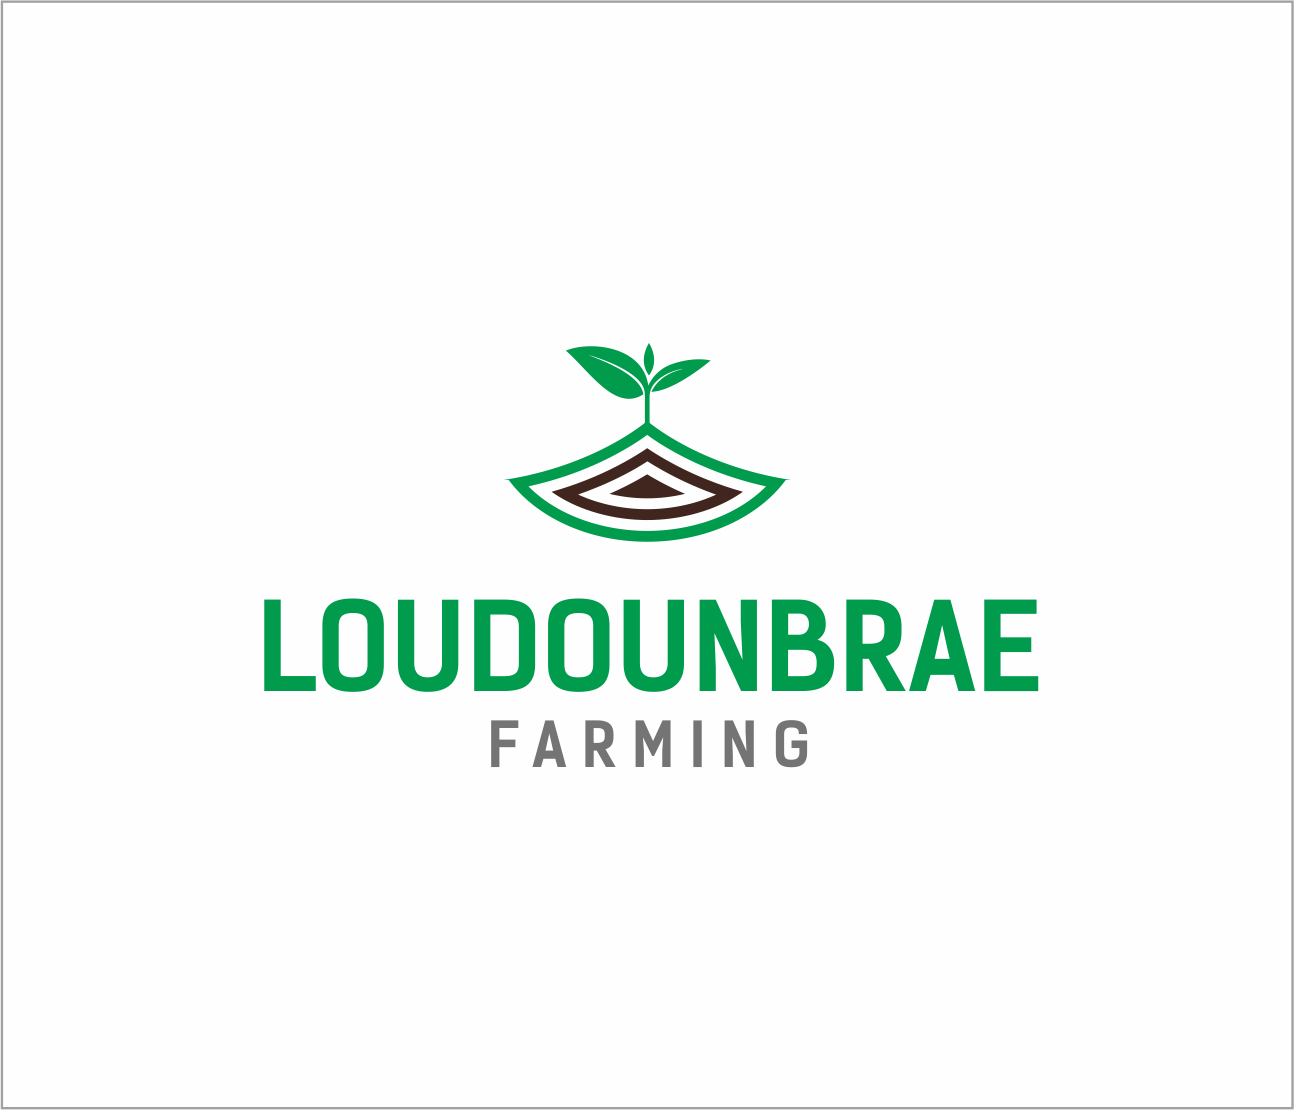 Logo Design by Armada Jamaluddin - Entry No. 73 in the Logo Design Contest Creative Logo Design for Loudounbrae Farming.